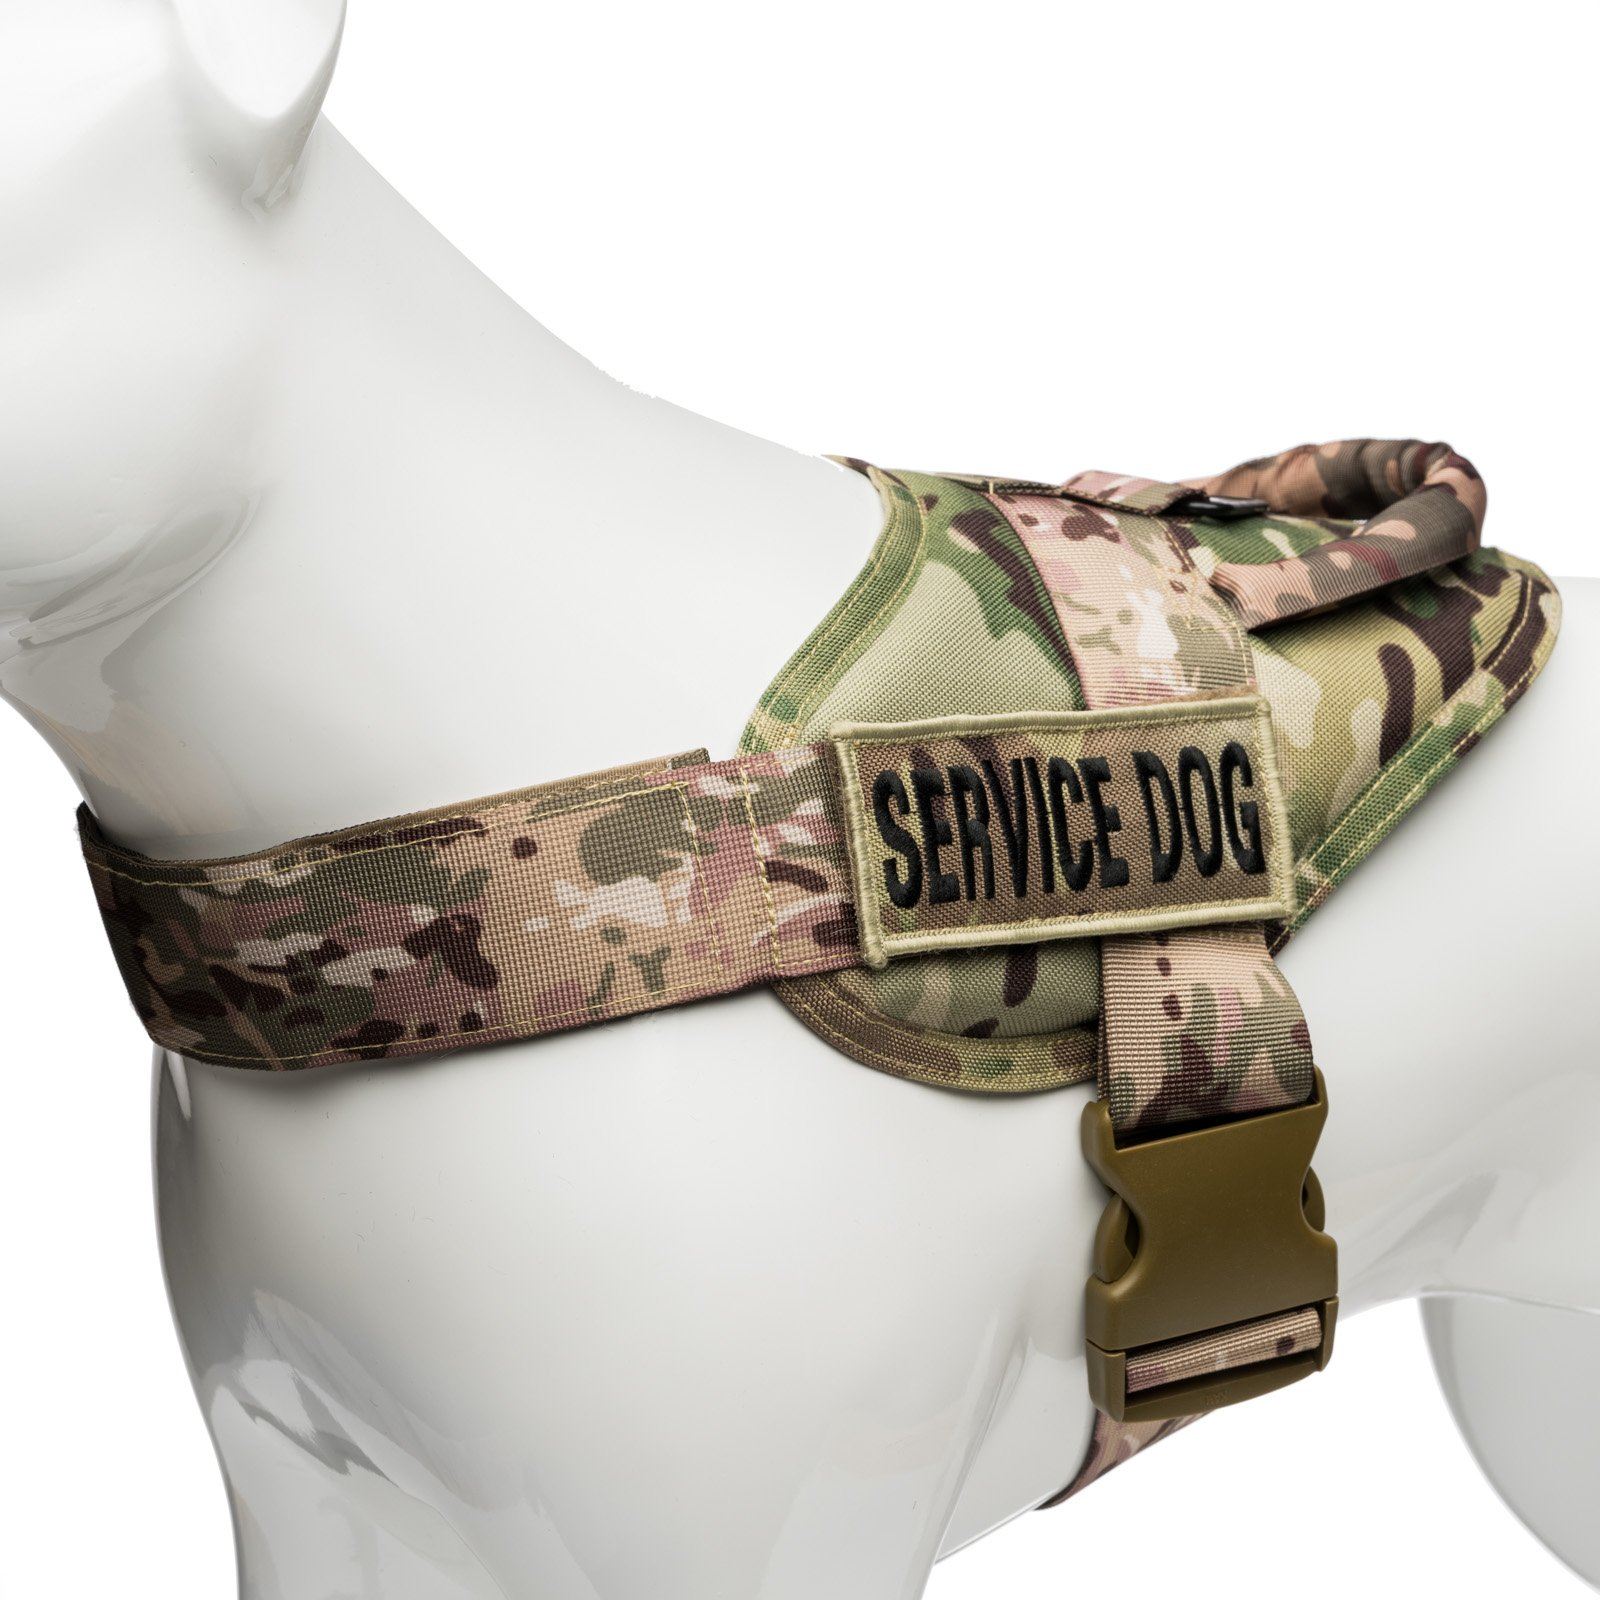 Industrial Puppy Camo Service Dog Vest Harness with Service Dog Patches – Military Dog Animal Harness Gear Kit – Adjustable Hook & Loop Strap – Jacket Loop Strips for Patch Accessories and Ring for Sm